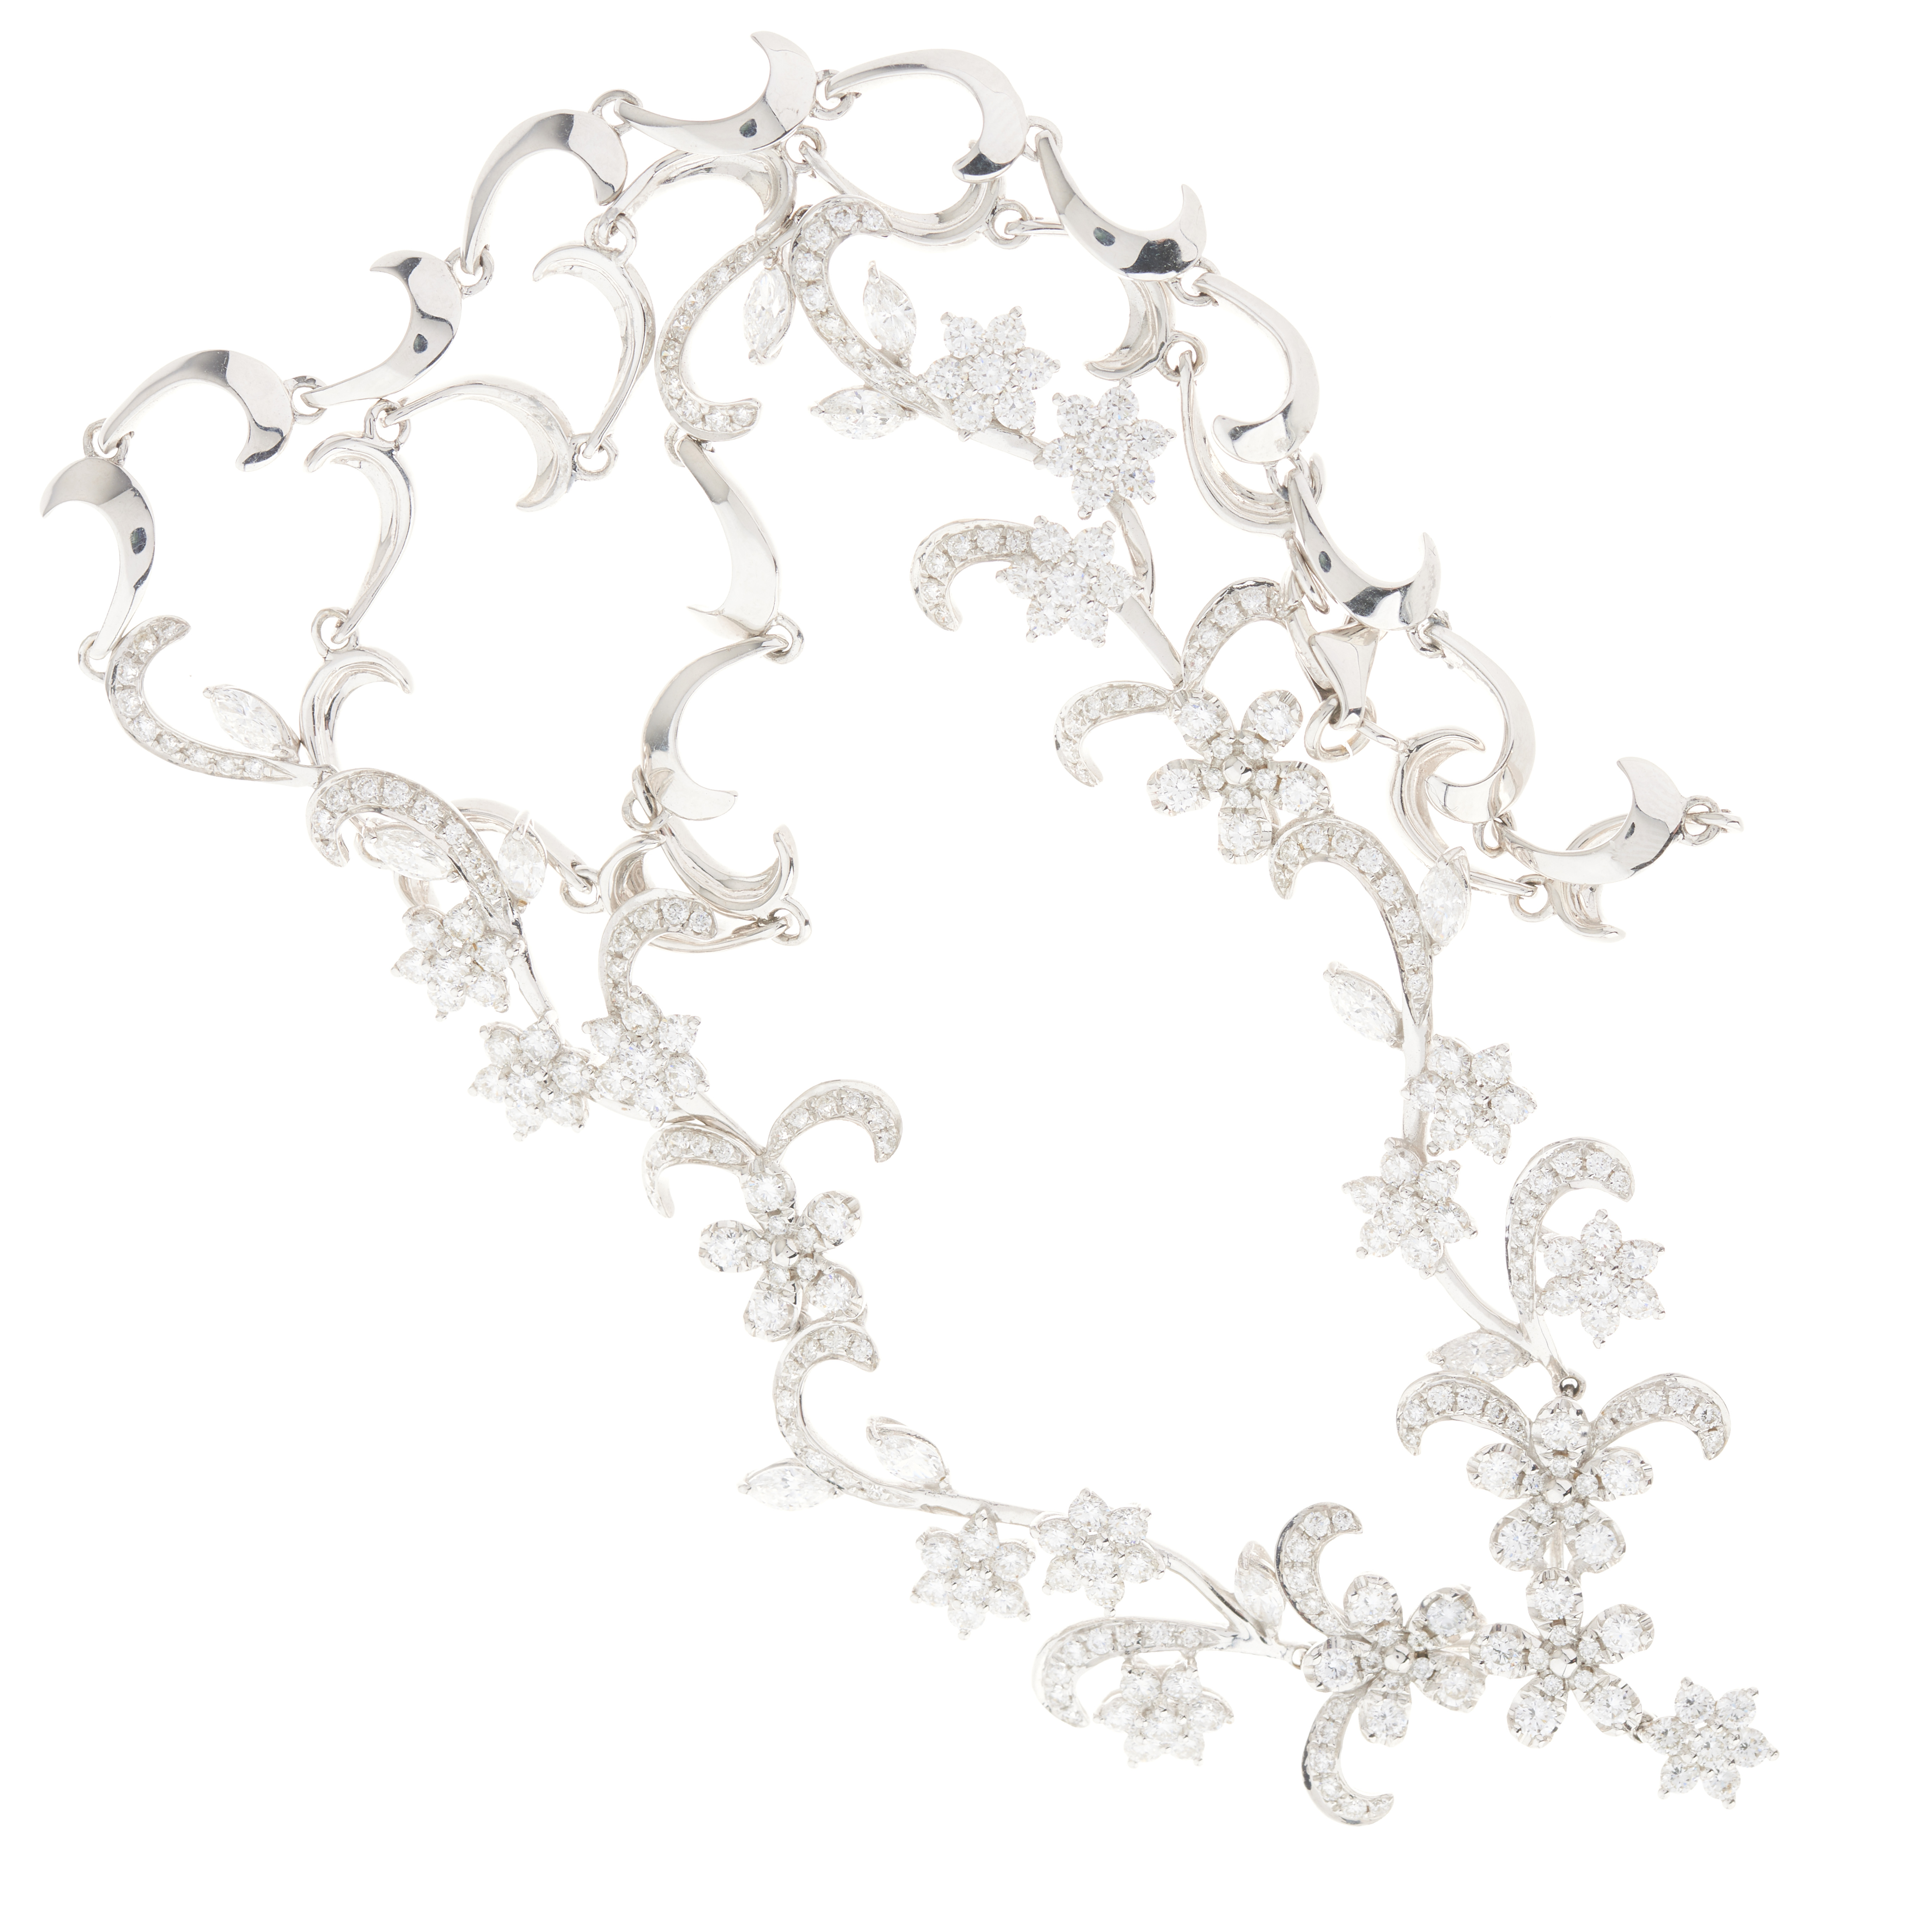 An 18ct gold diamond floral and foliate necklace - Image 3 of 3